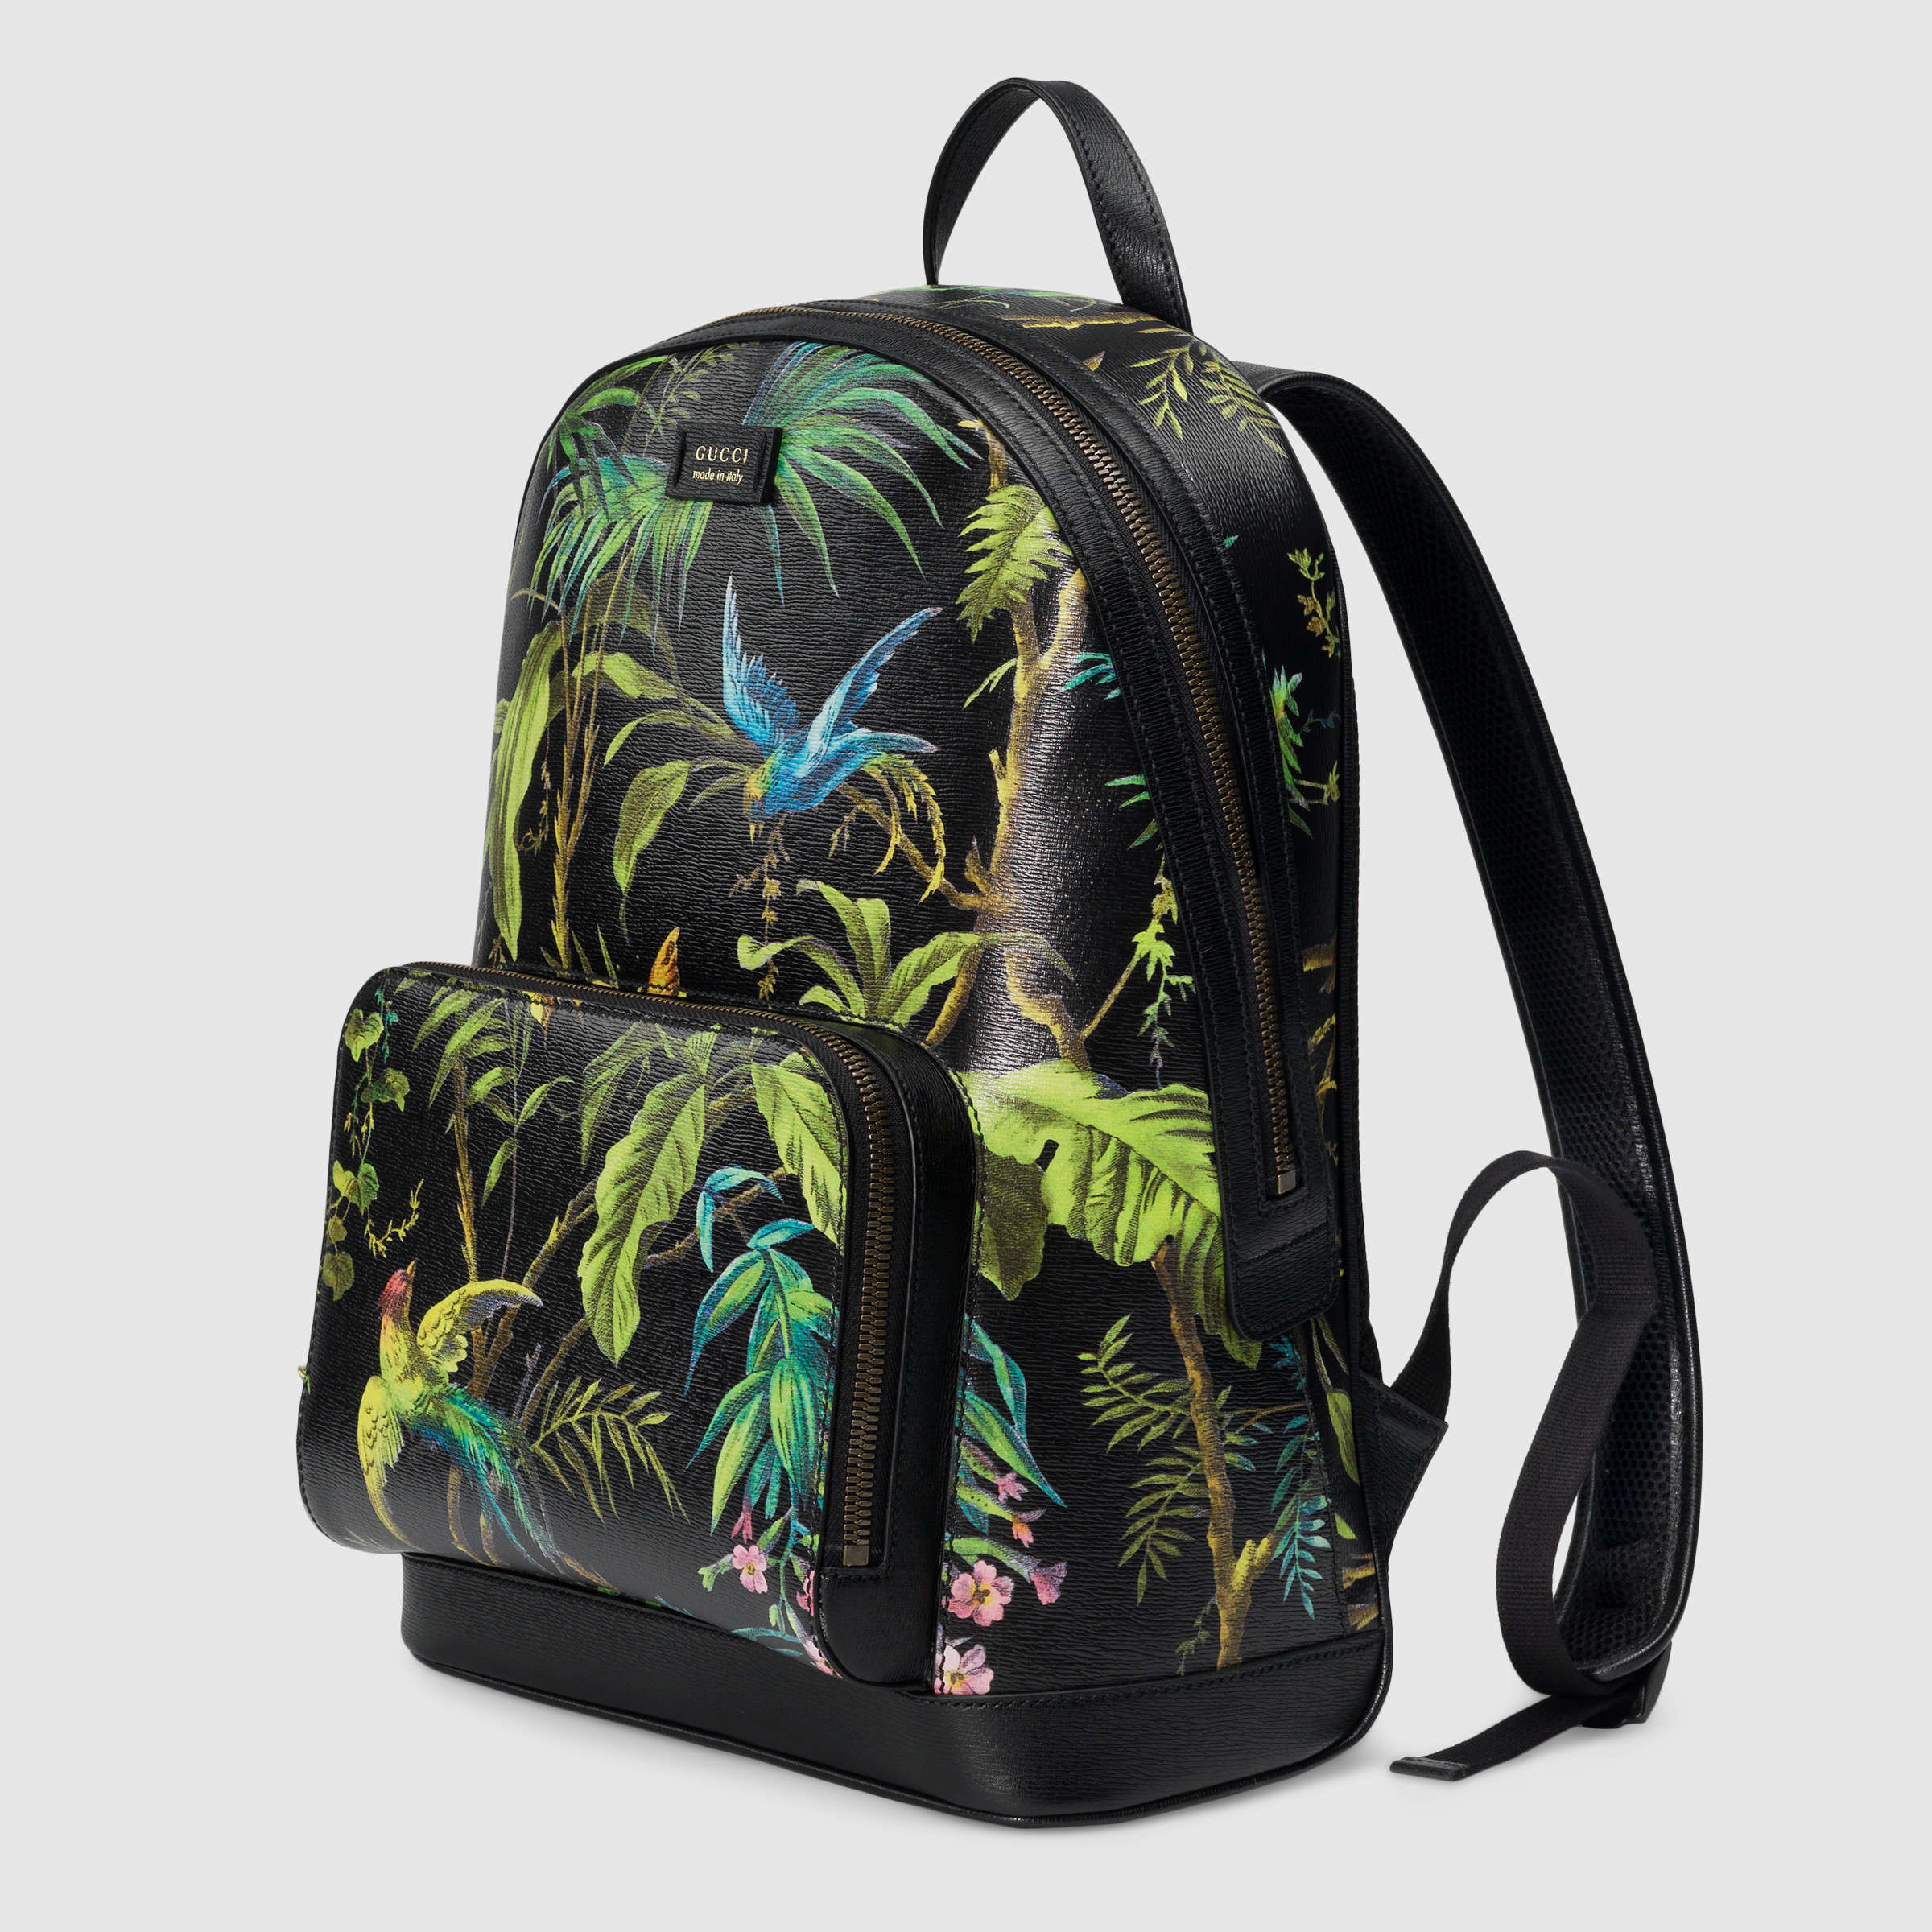 04b88a1ed33 Lyst - Gucci Tropical Print Leather Backpack in Brown